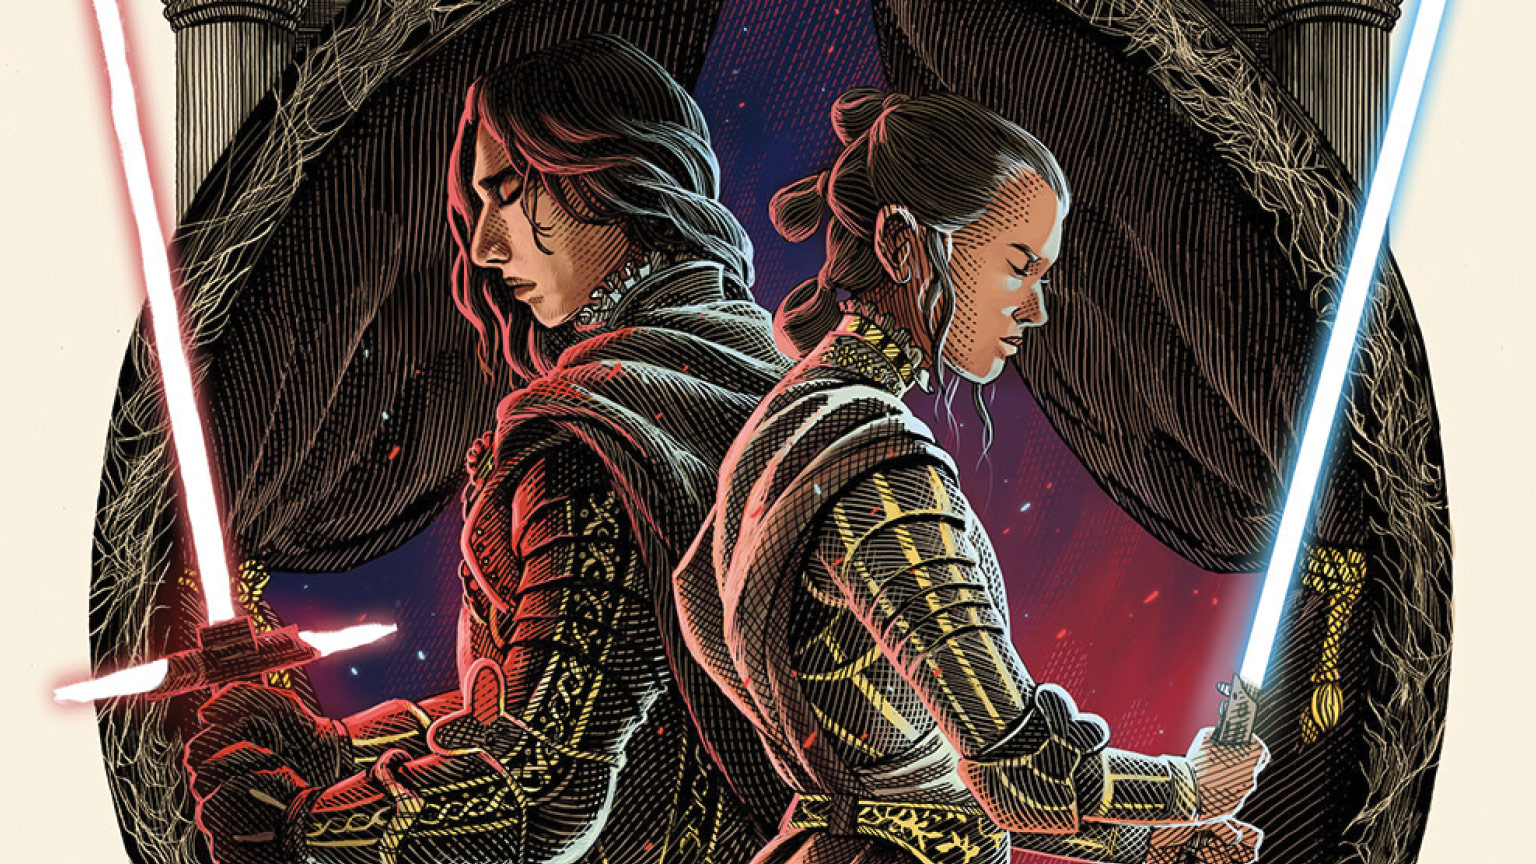 The Merry Rise of Skywalker cover